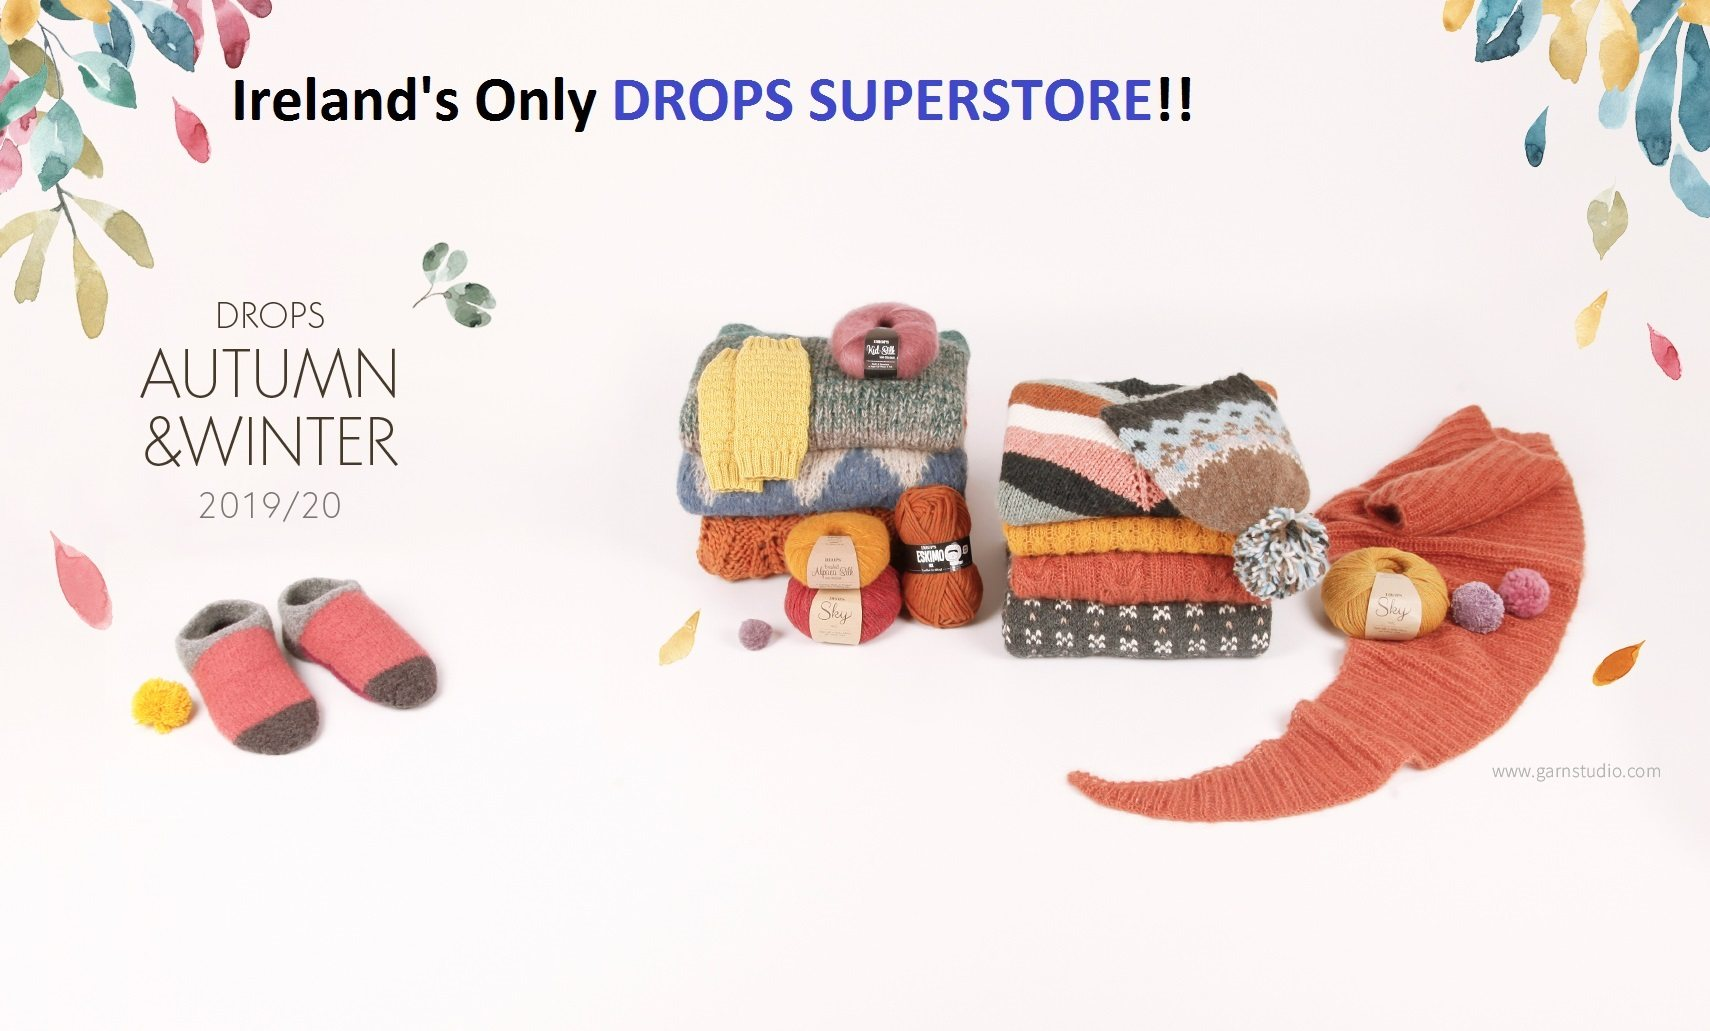 Ireland's Only DROPS SUPERSTORE